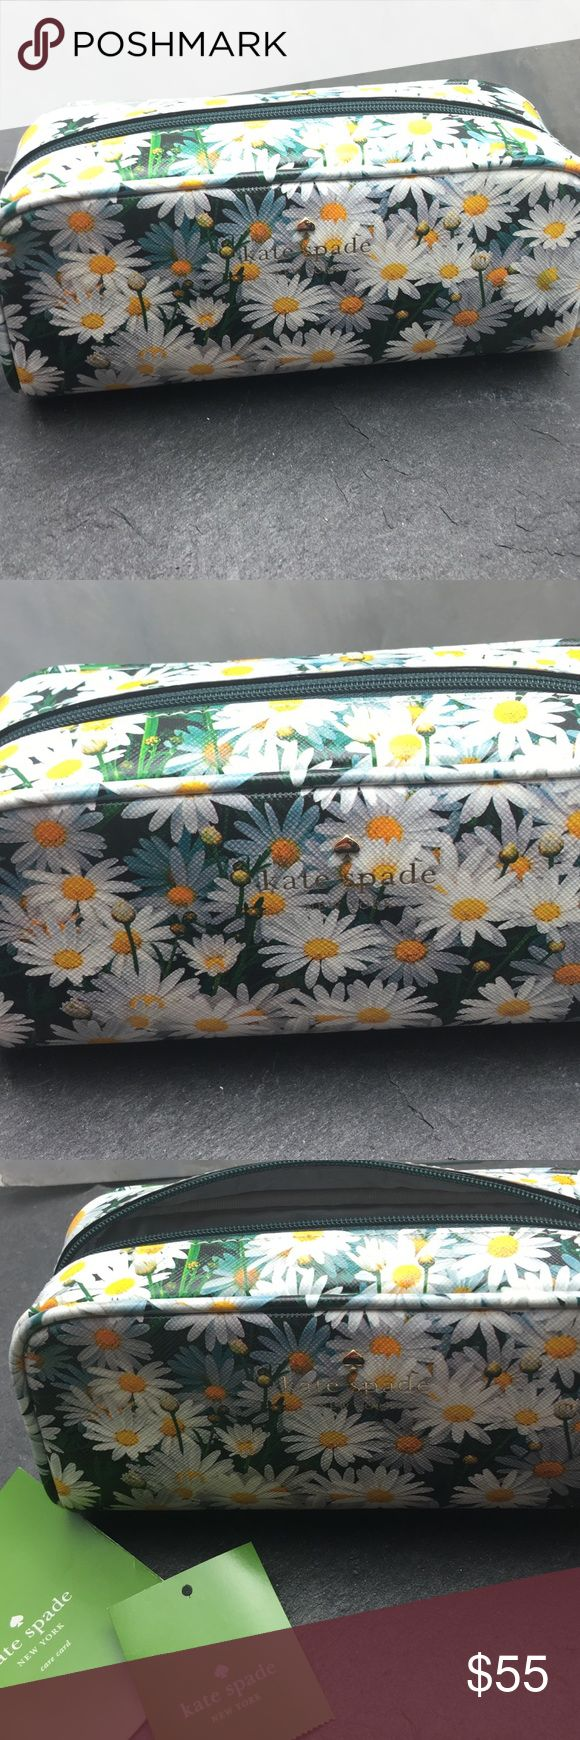 Kate Spade Daisy makeup bag Beautiful Kate Spade make up bag with saffiano leather and daisy print. kate spade Bags Cosmetic Bags & Cases